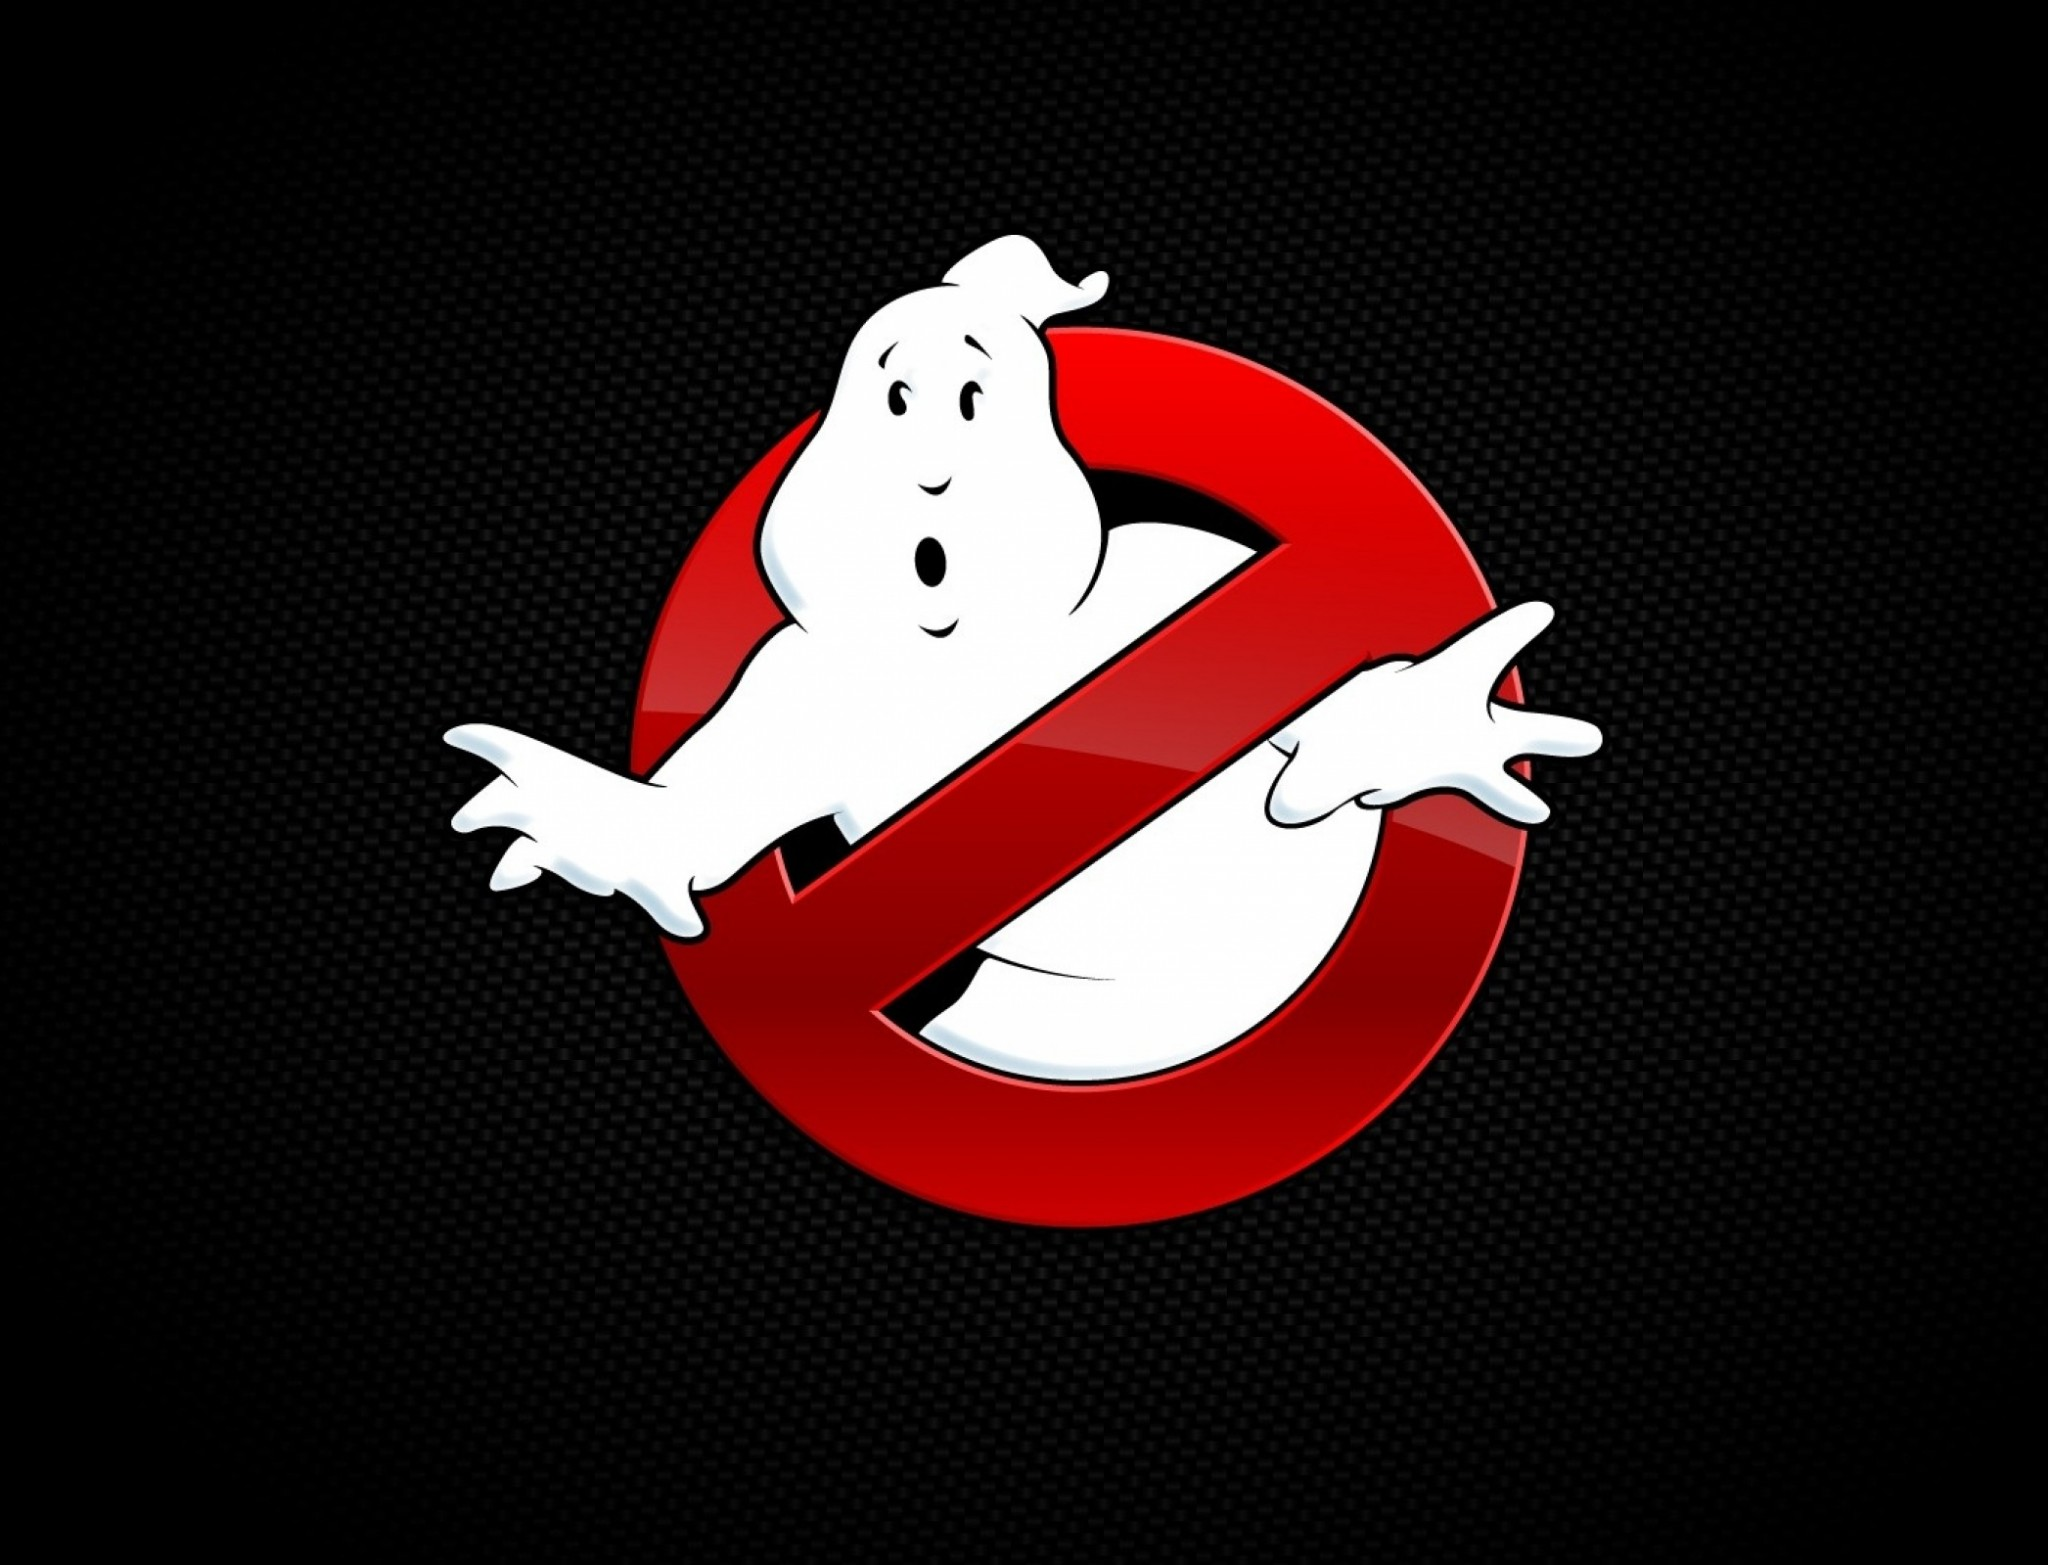 Ghostbusters 3 director offers update